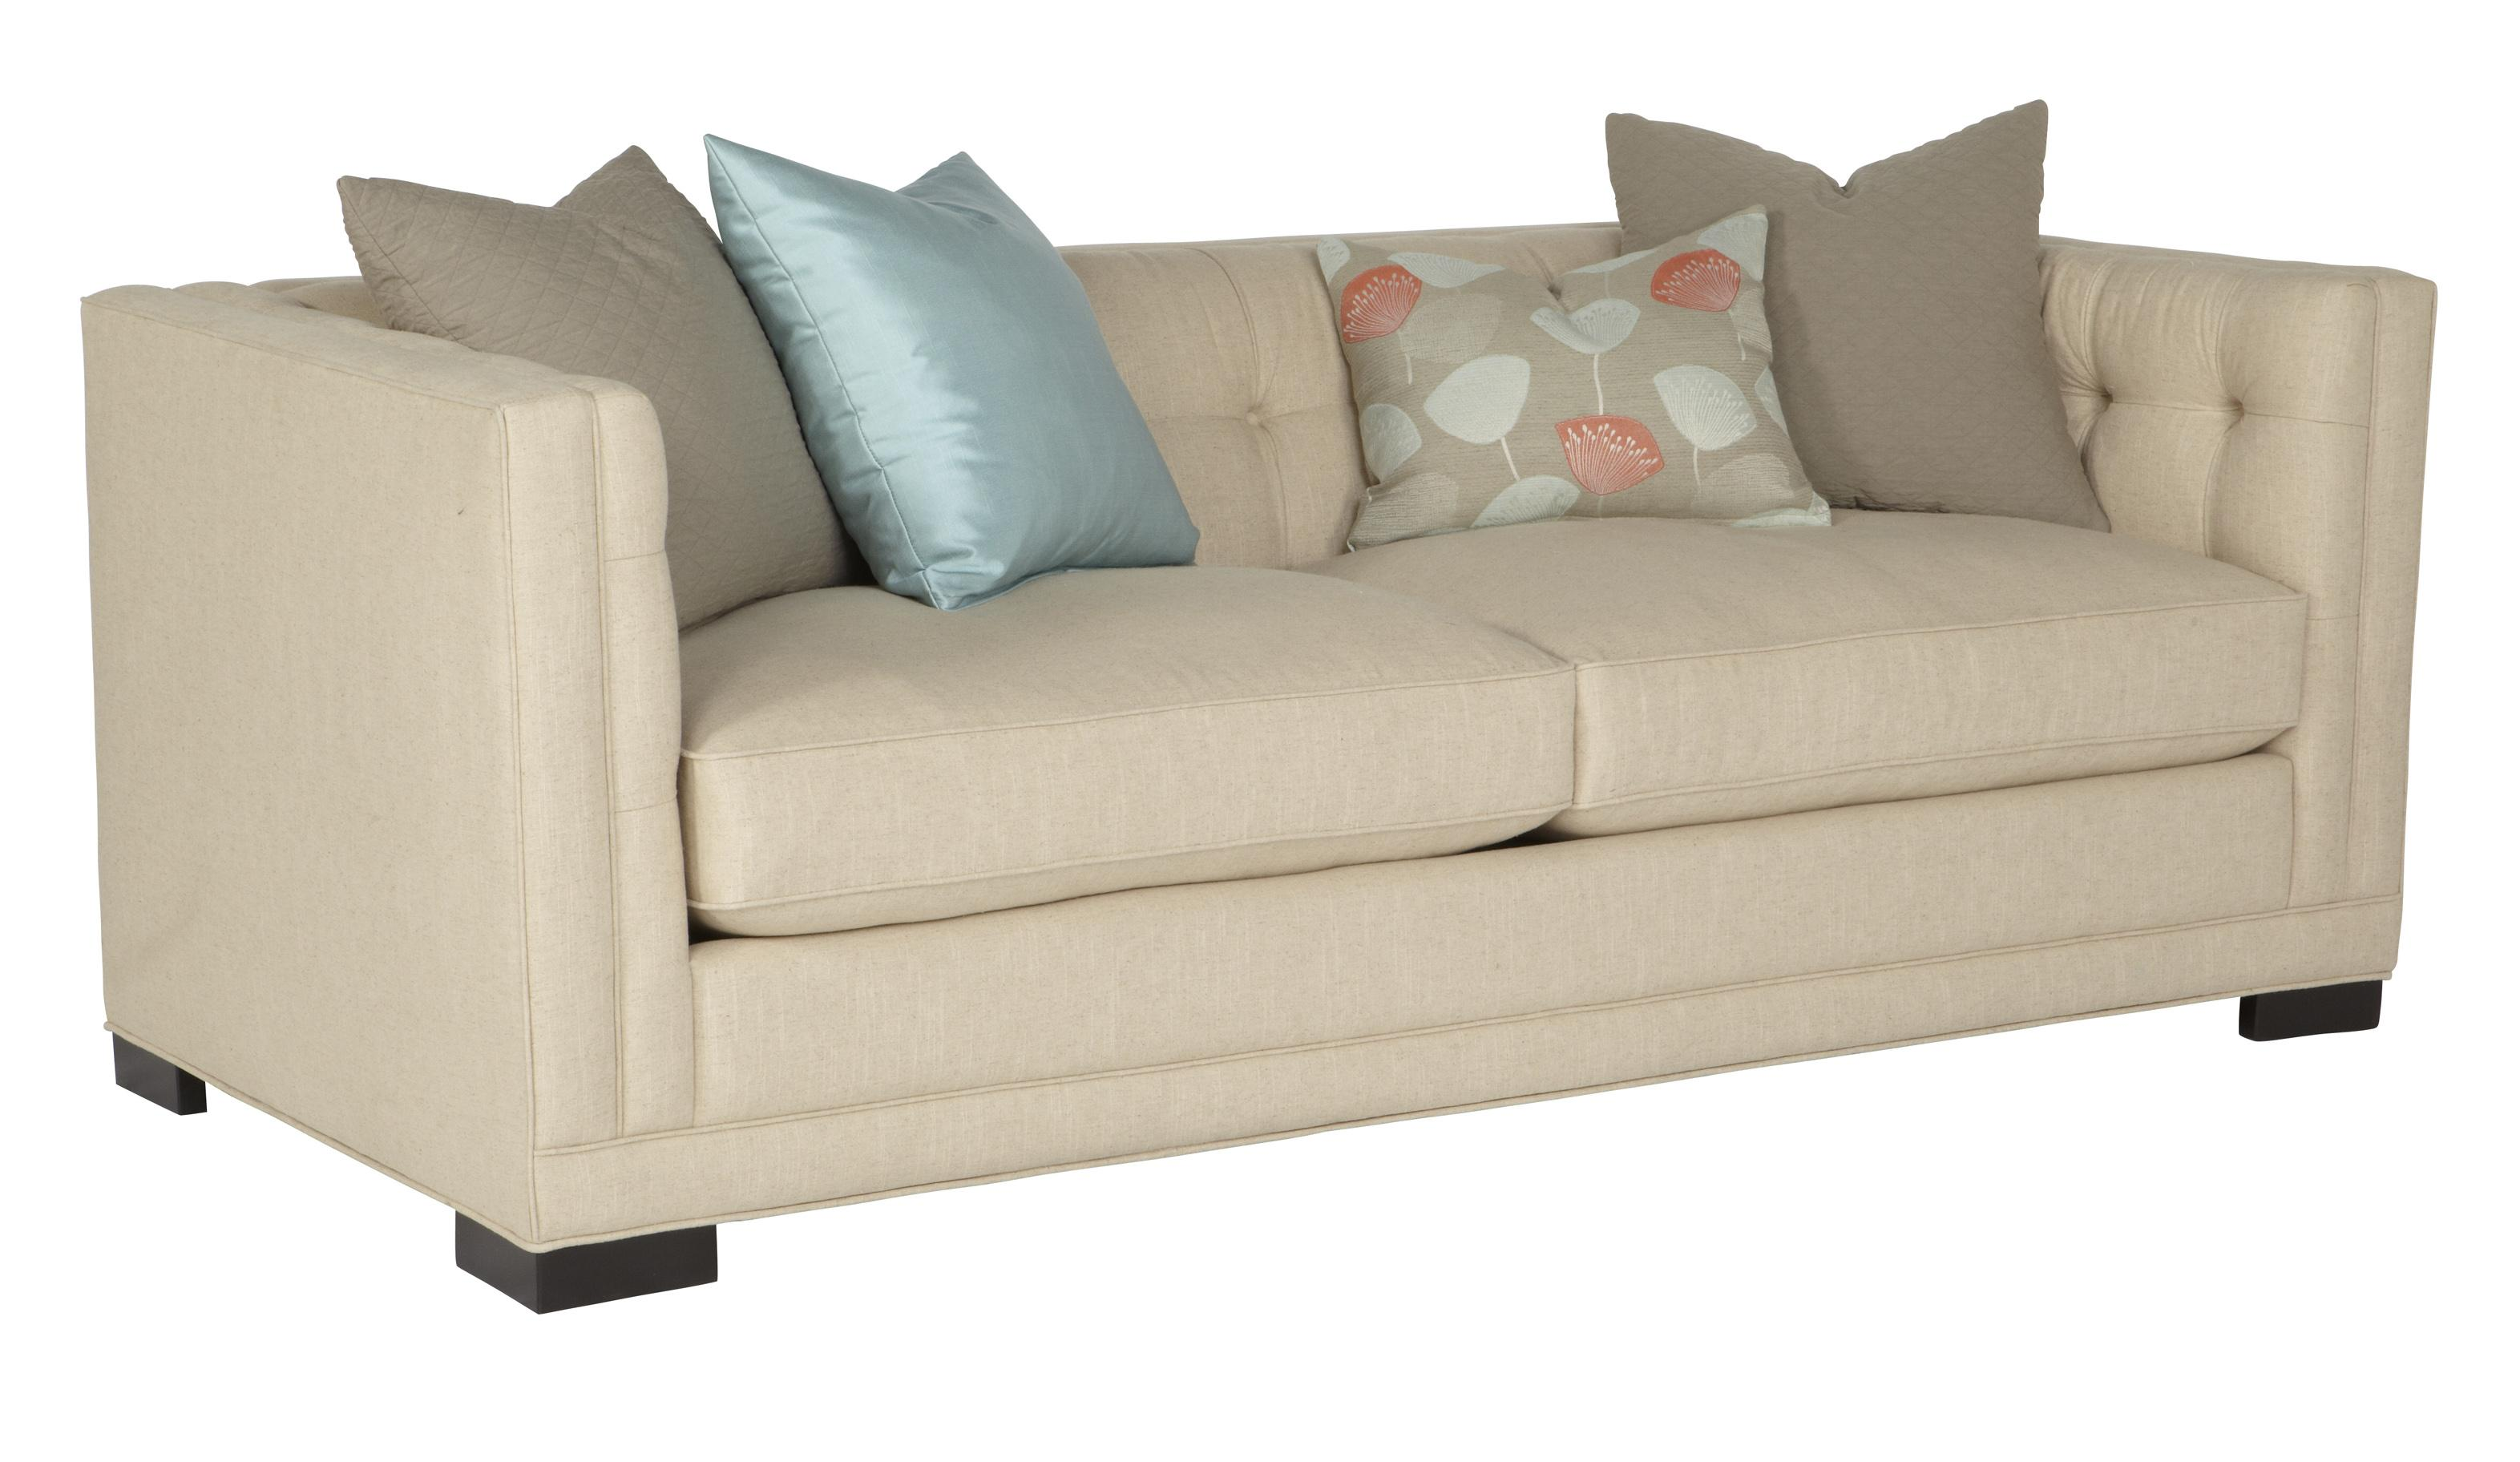 Abby Sofa by Jonathan Louis at Michael Alan Furniture & Design